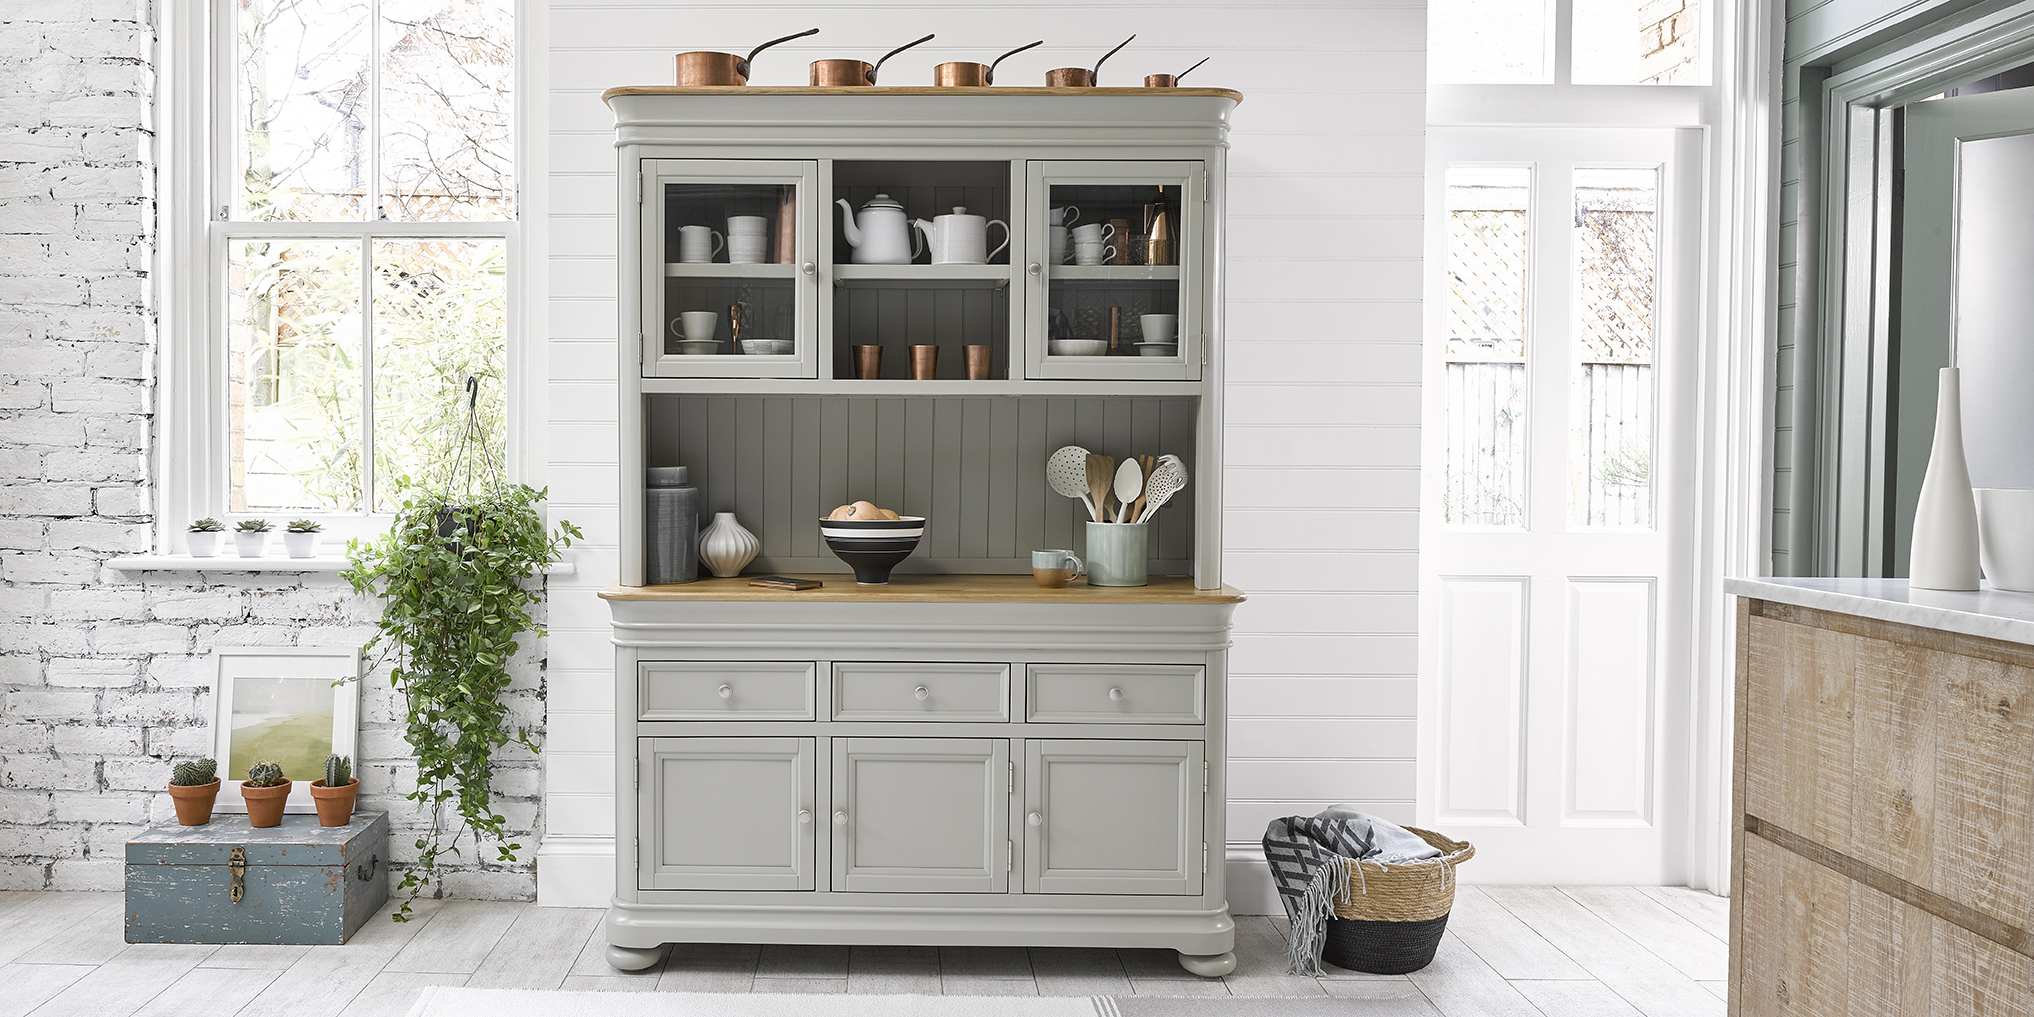 Brindle collection painted kitchen dresser